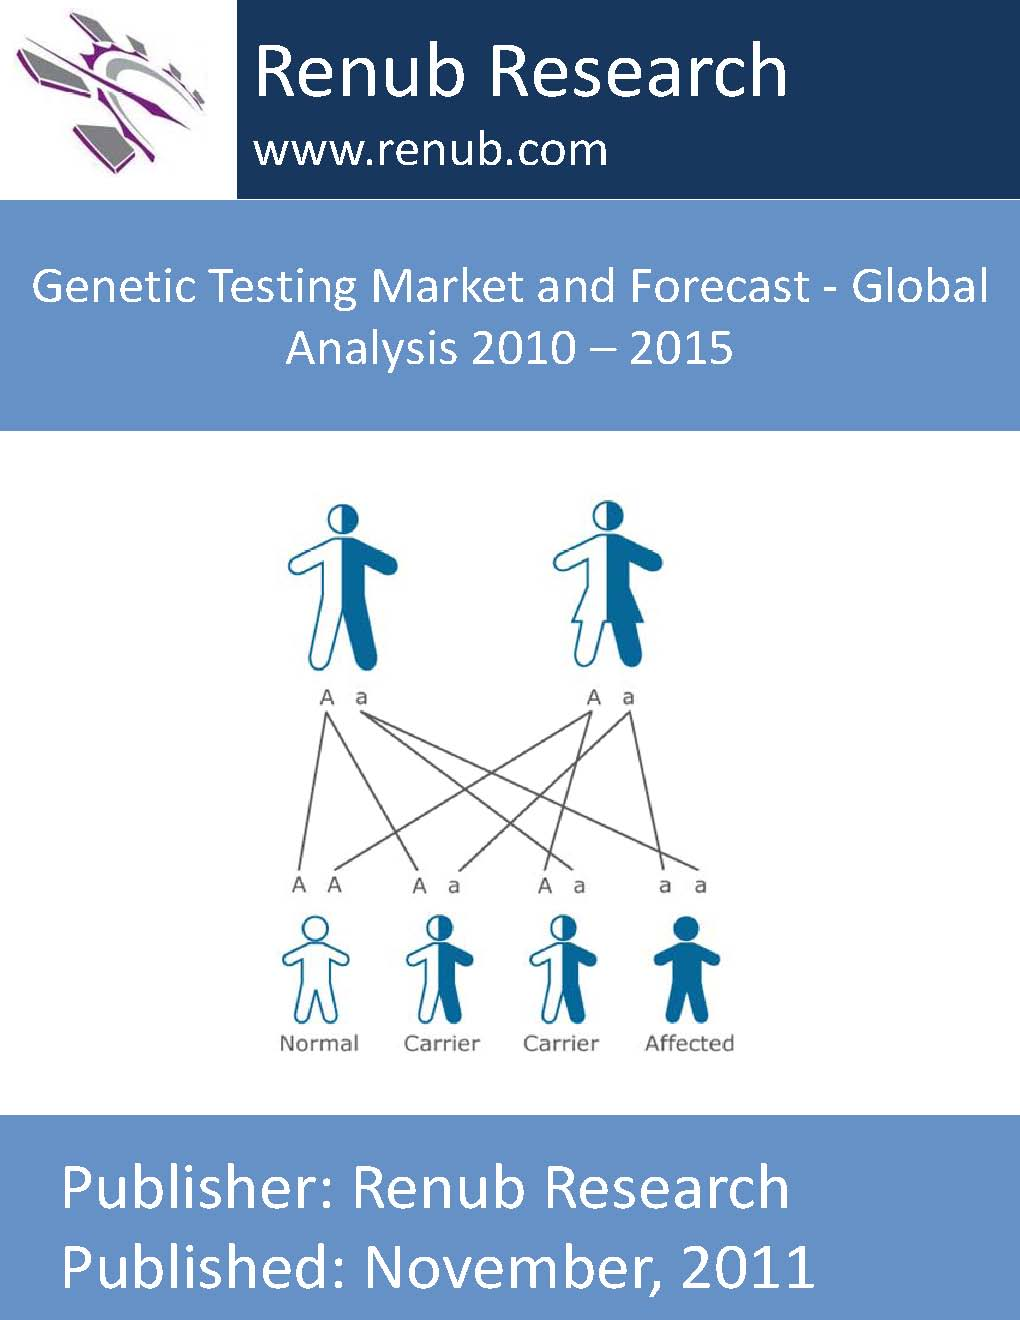 Genetic Testing Market and Forecast - Global Analysis 2010 - 2015